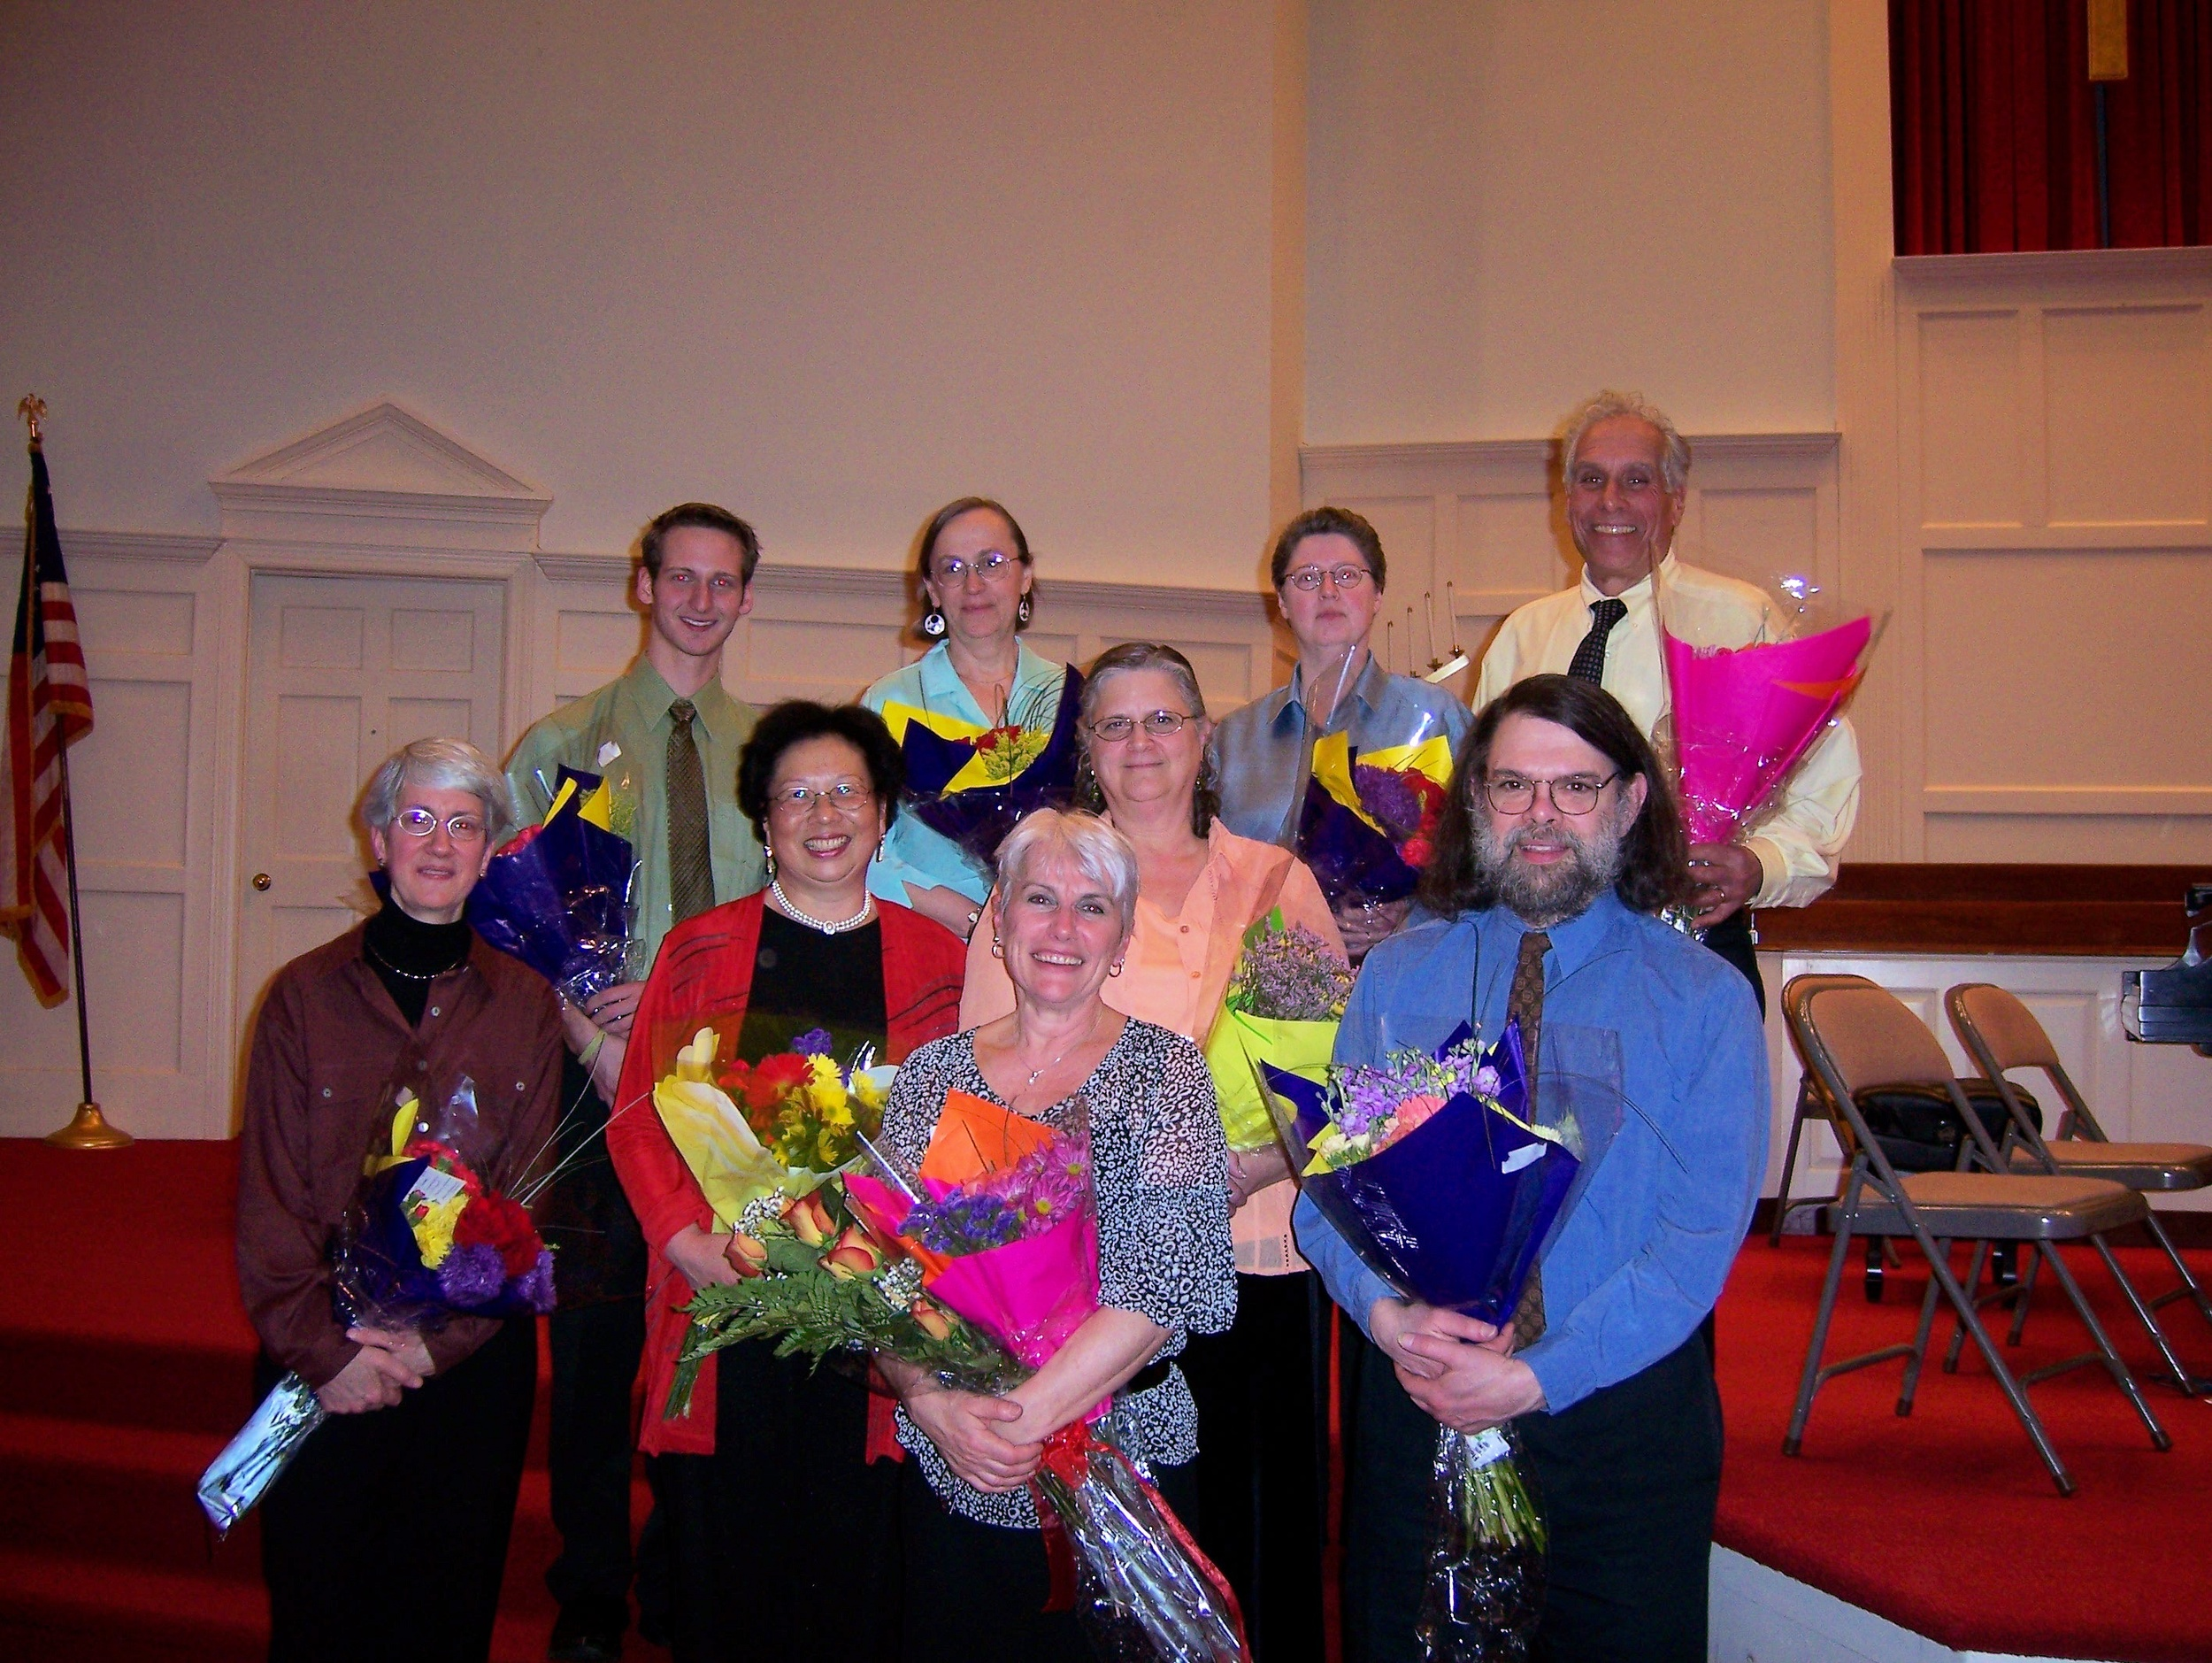 The Bravura Philharmonic Chamber Players Back Row: Chris Hansel, Melissa Bohl, Debra Gers, Ed Ziegman Middle Row: Barbara Williams, Chiu-Ling Lin, Elizabeth Randolph Front Row: Sylvie Webb, Ron Sverdlove